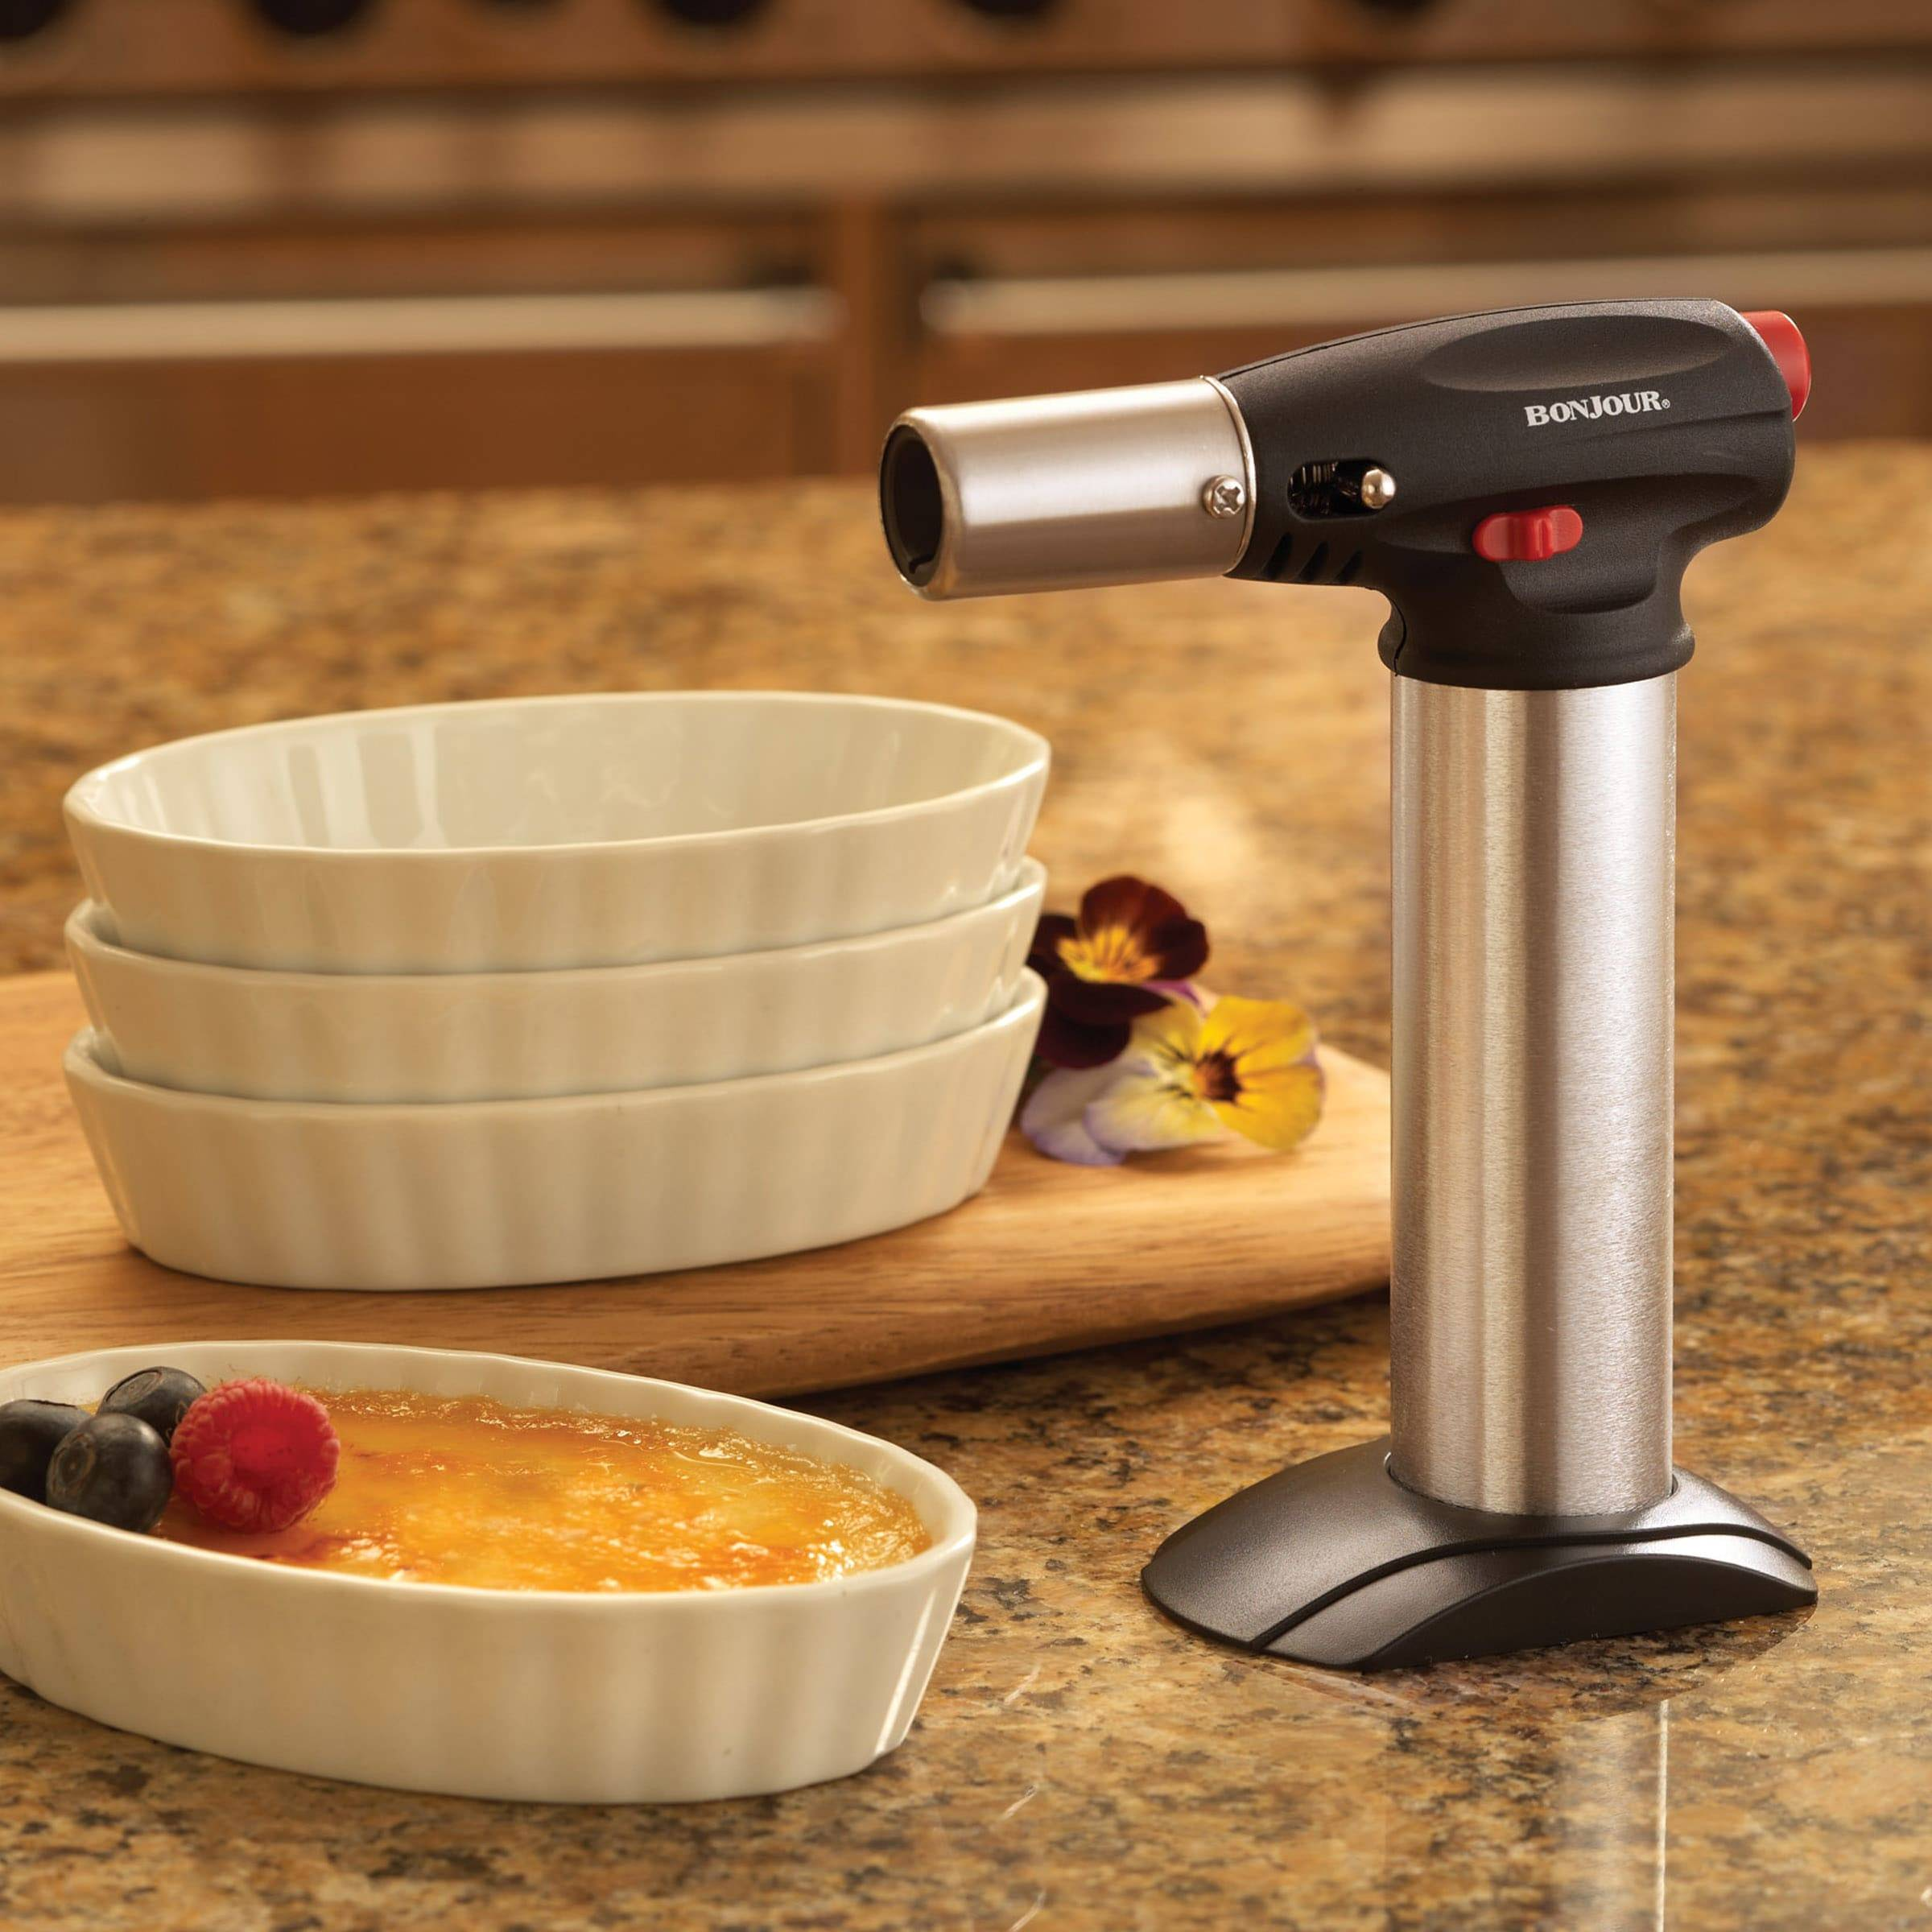 BONJOUR CHEF'S TOOLS PROFESSIONAL CULINARY  CRME BRLE TORCH, BLACK